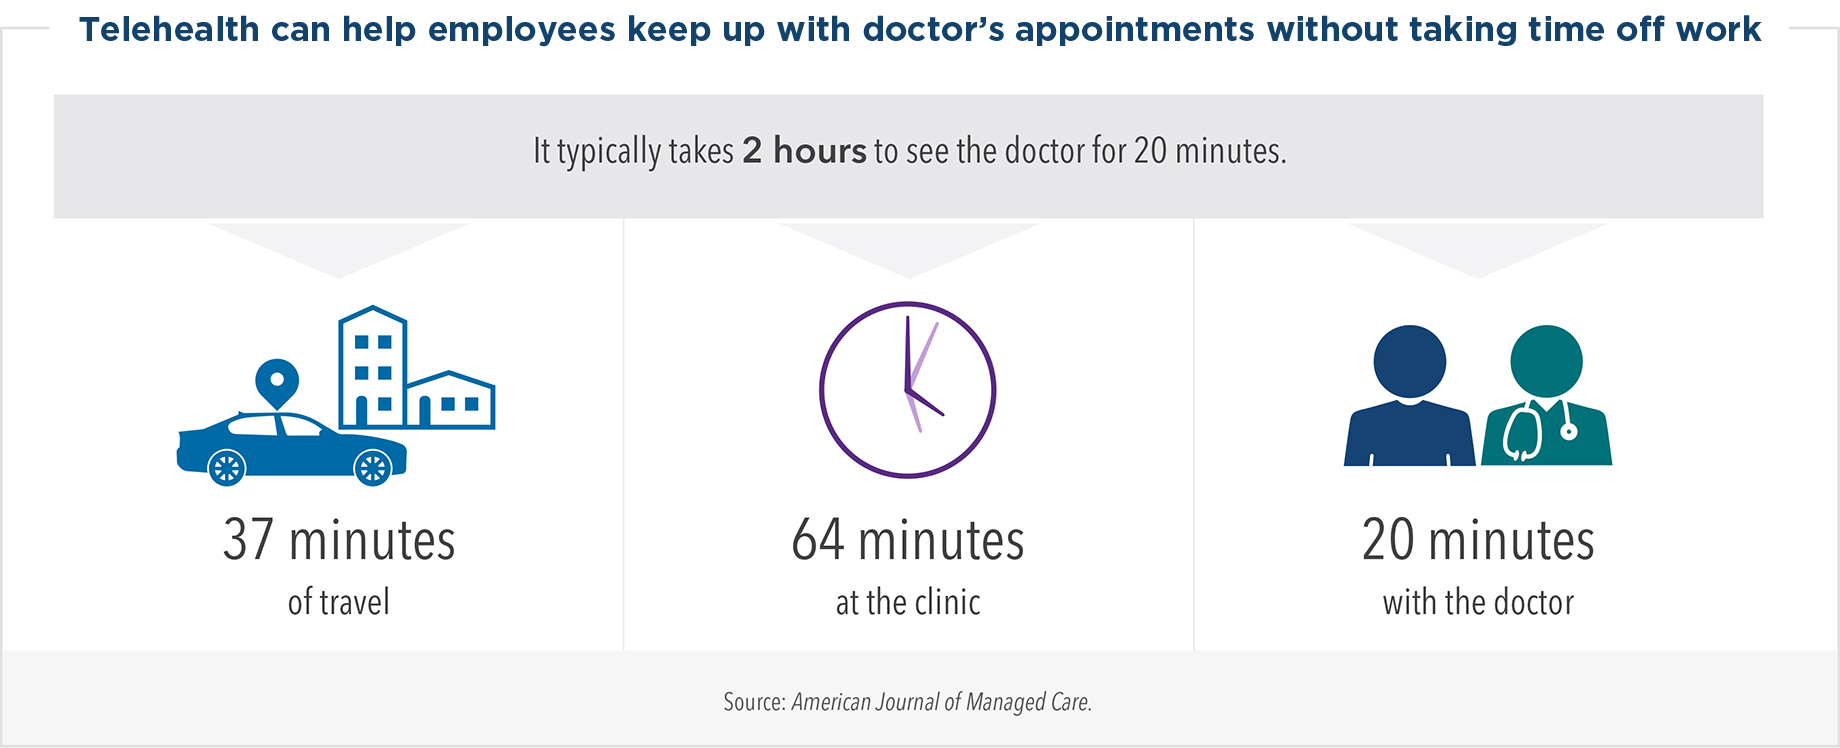 Telehealth can help employees keep up with doctor's appointments without taking time off work. It typically takes two hours to see the doctor for 20 minutes, including 37 minutes of travel, 64 minutes at the clinic, and 20 minutes with the doctor.